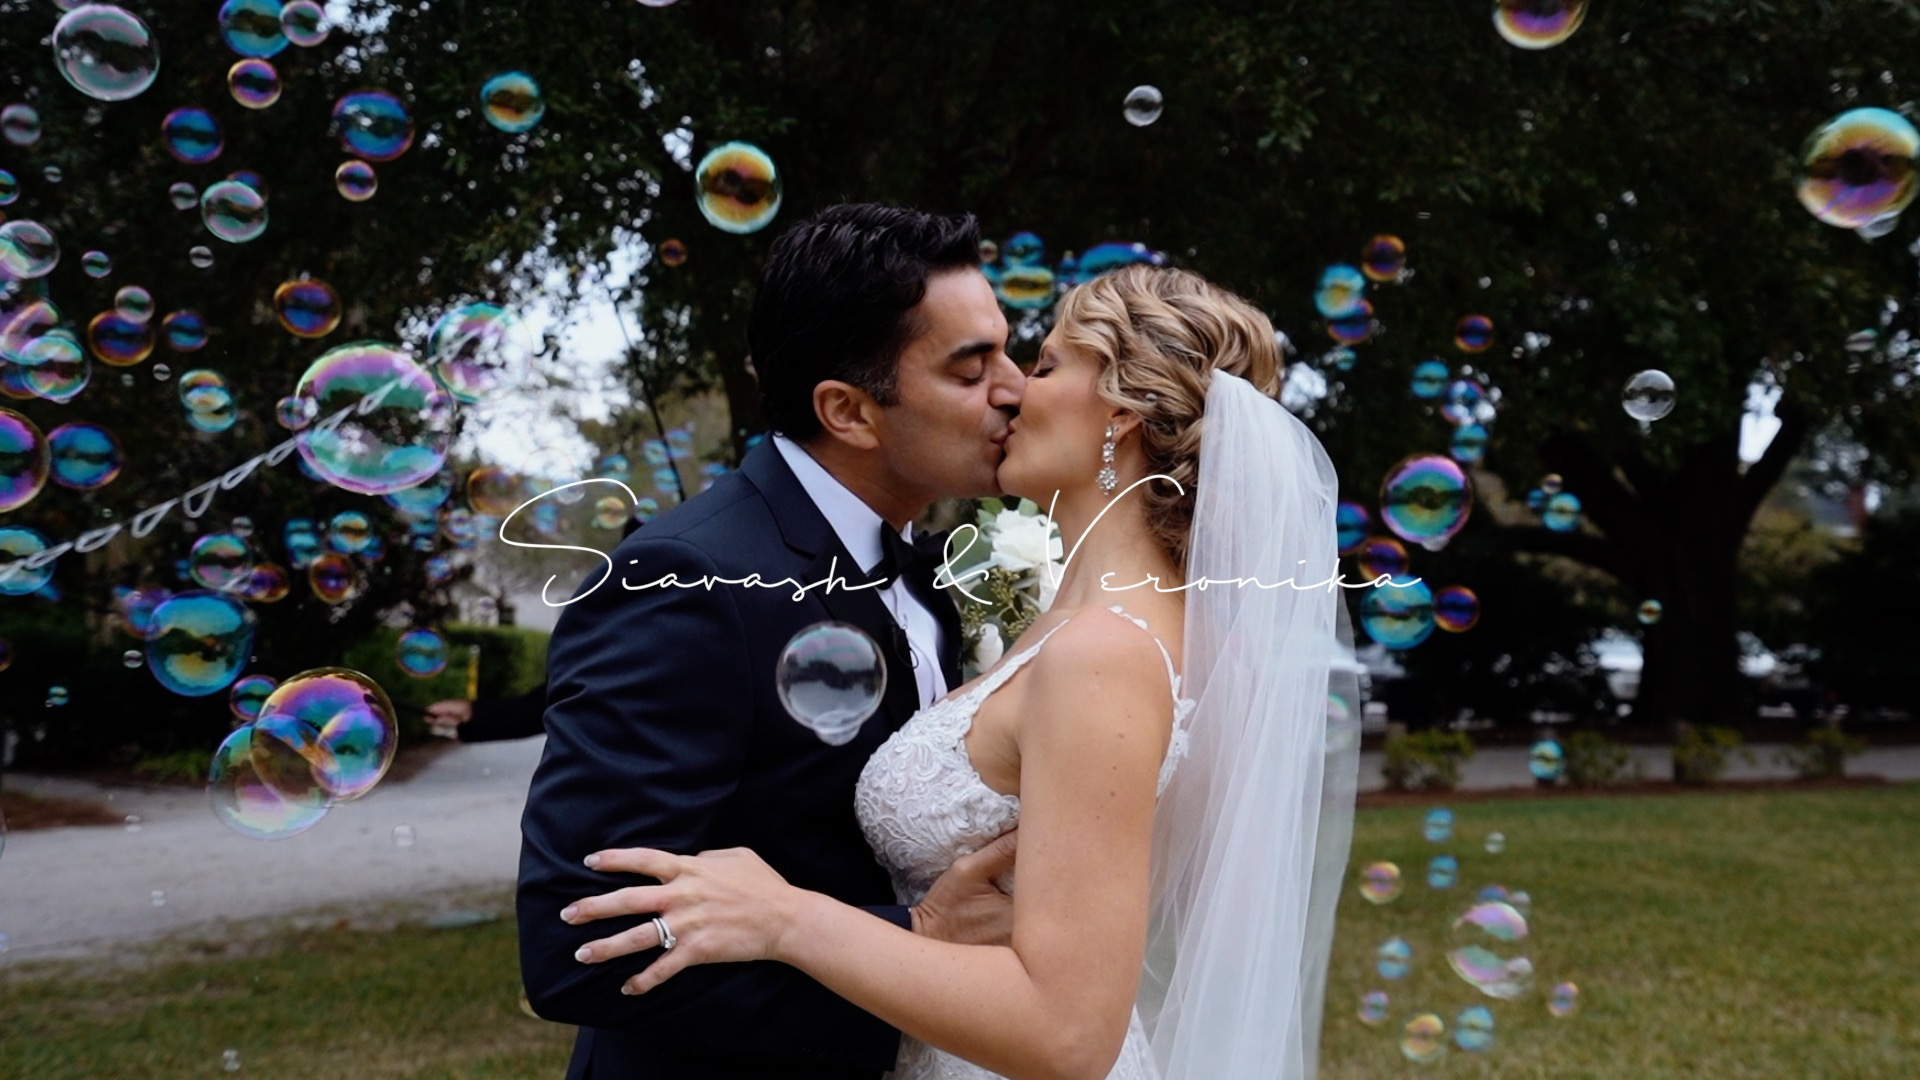 Siavash + Veronika | Charleston, South Carolina | Lowndes Grove